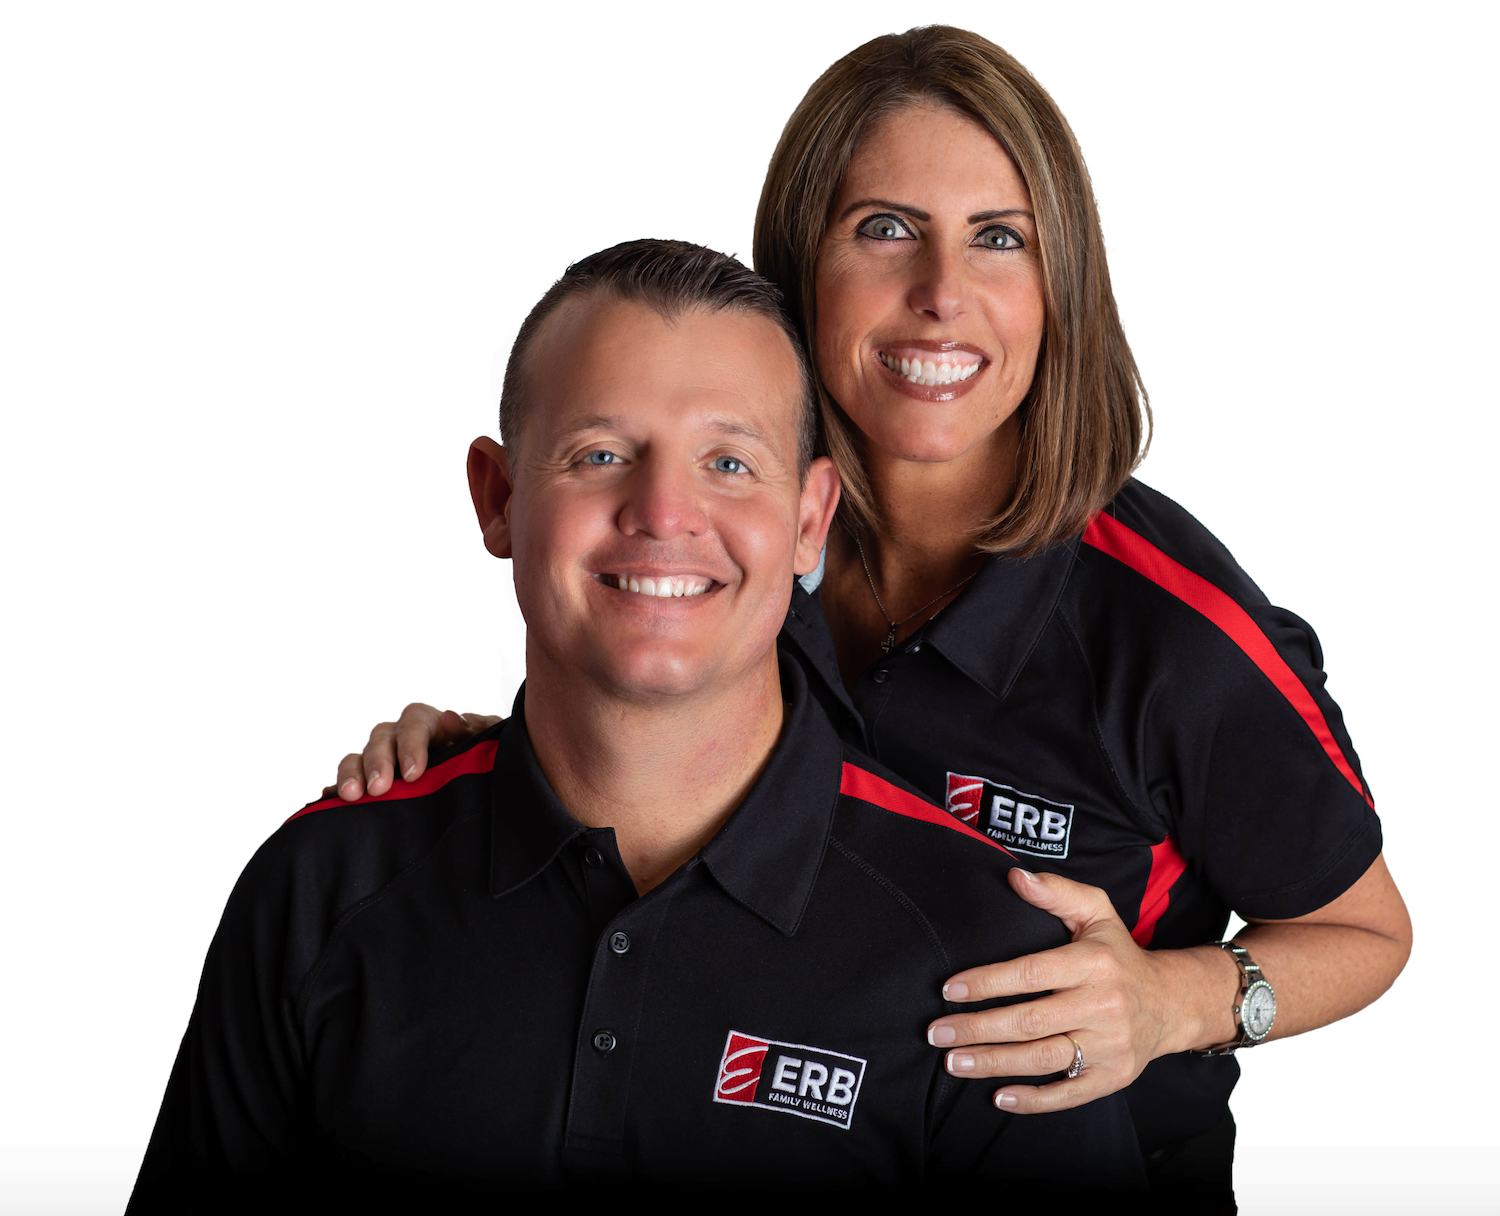 Drs. David and Kimberly Erb